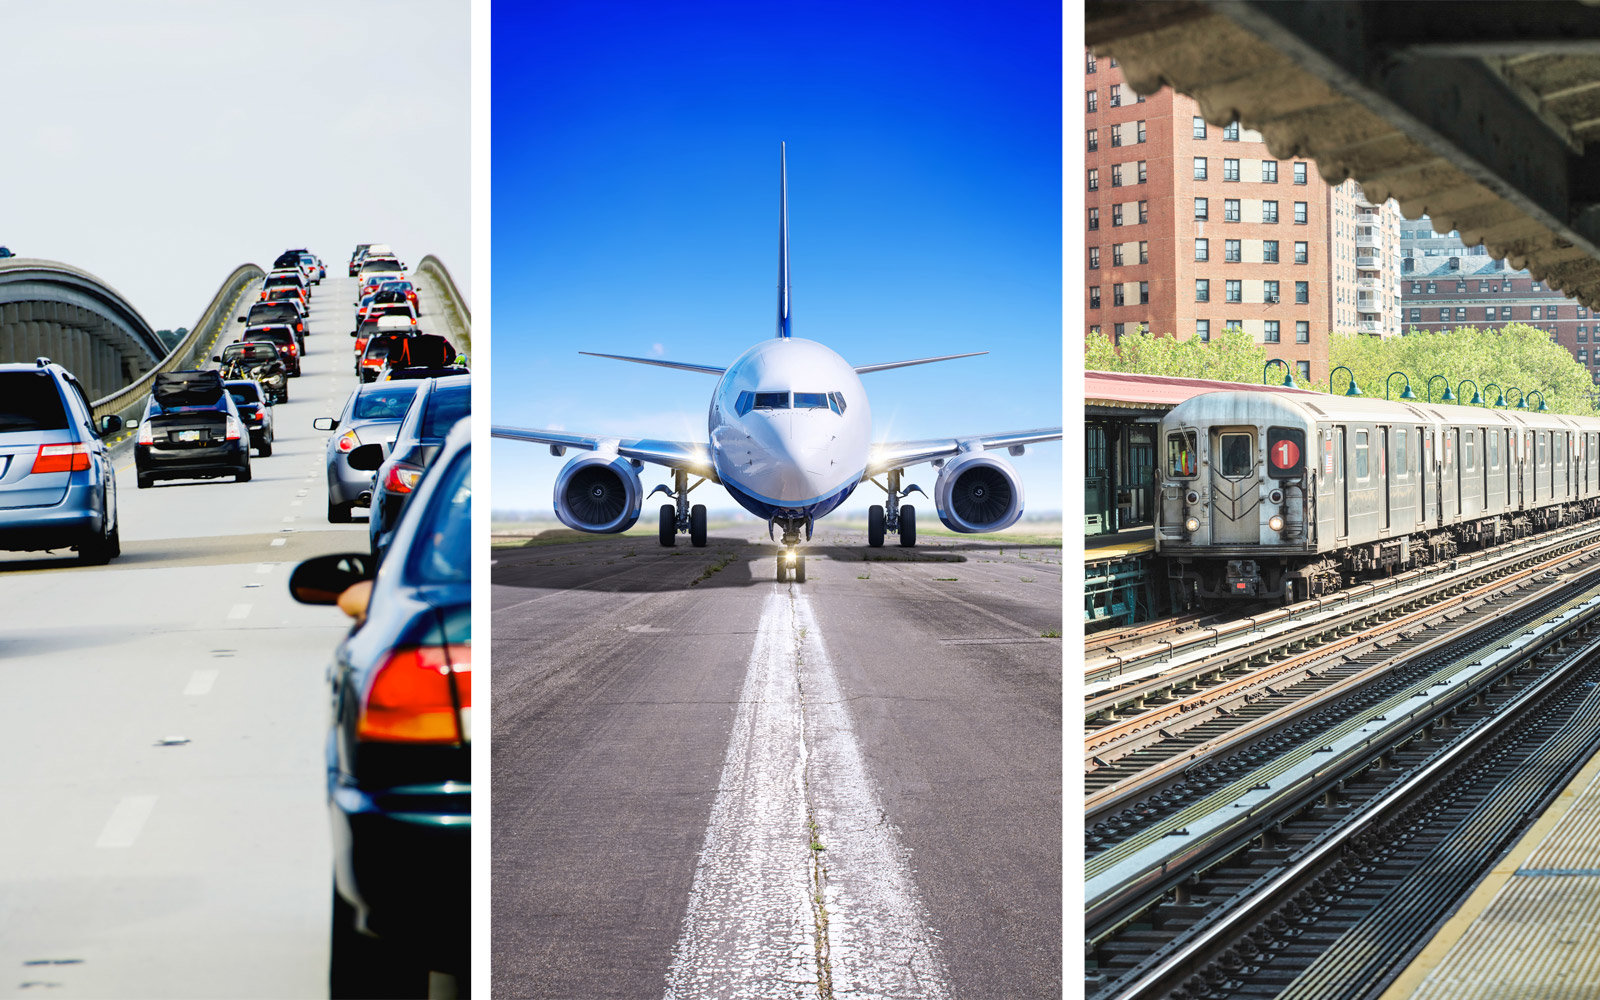 Cars on the highway, plane on the runway, subway at the station